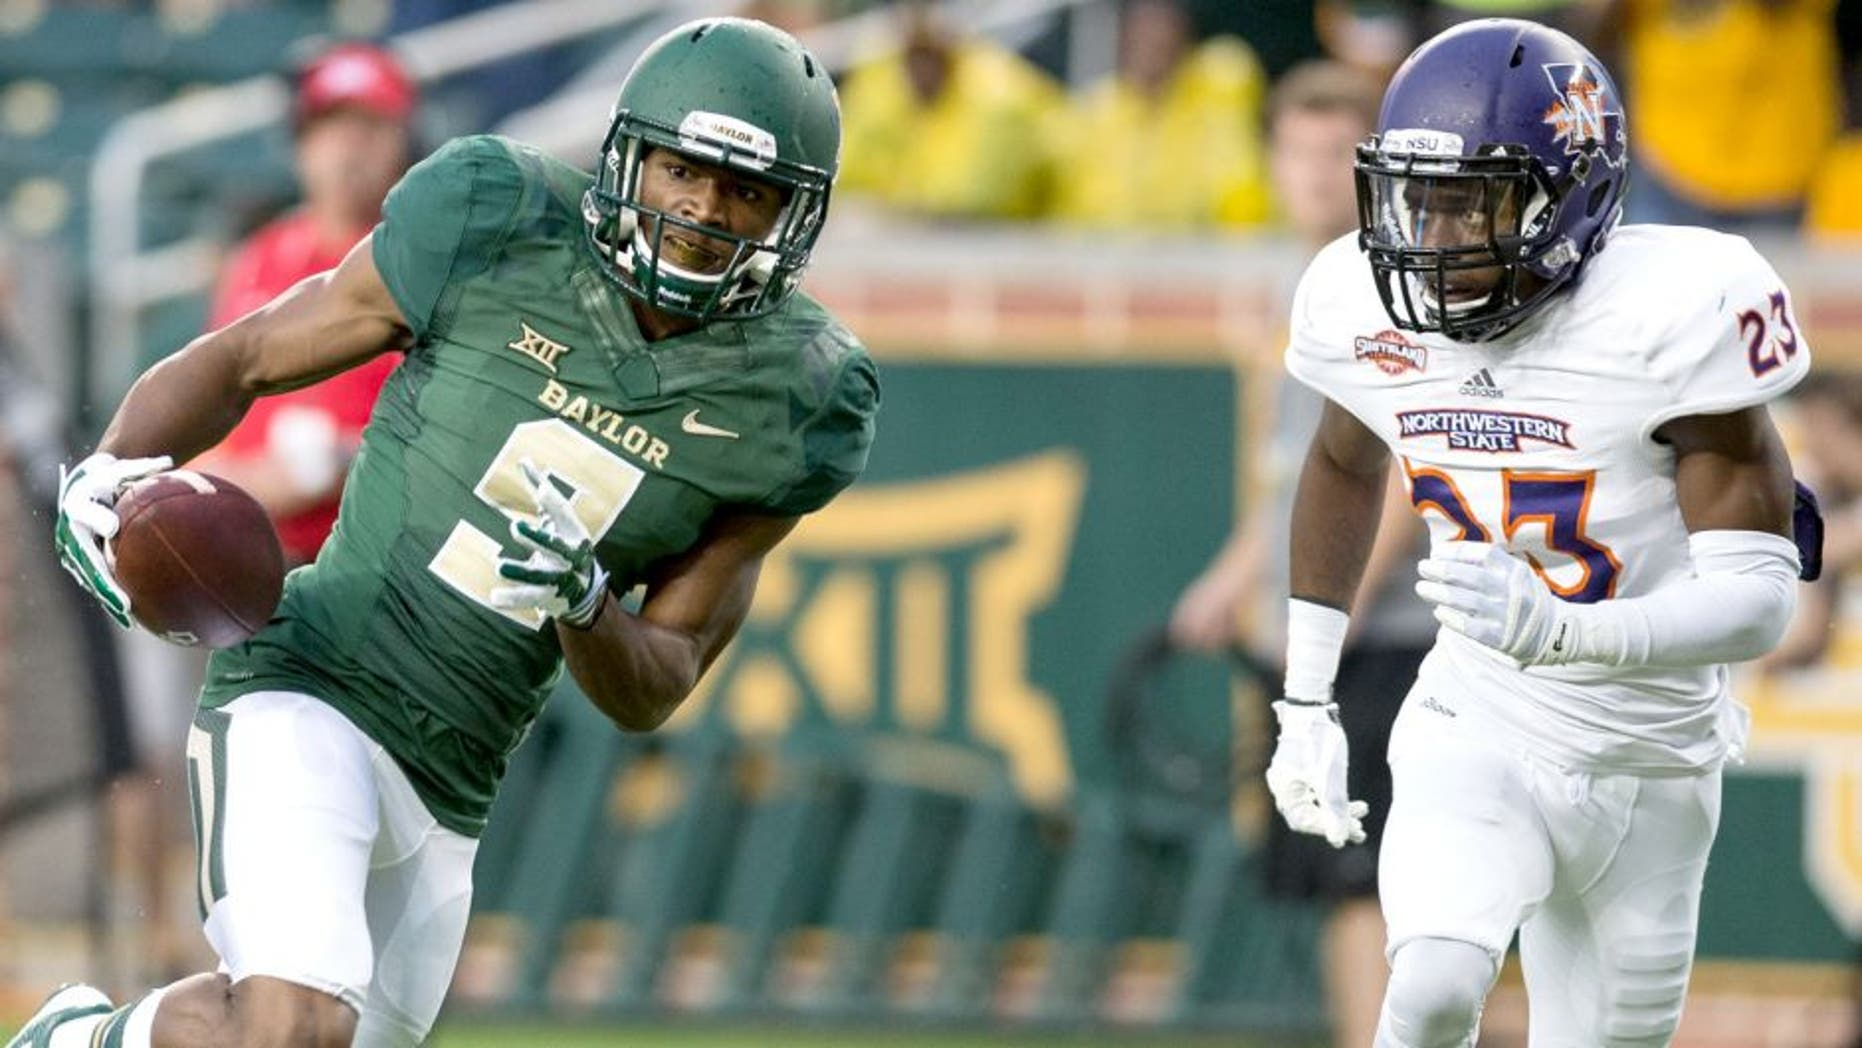 Sep 6, 2014; Waco, TX, USA; Baylor Bears wide receiver KD Cannon (9) catches a pass for a touchdown as Northwestern State Demons cornerback Fred Thomas (23) defends during the first quarter at McLane Stadium. Mandatory Credit: Jerome Miron-USA TODAY Sports